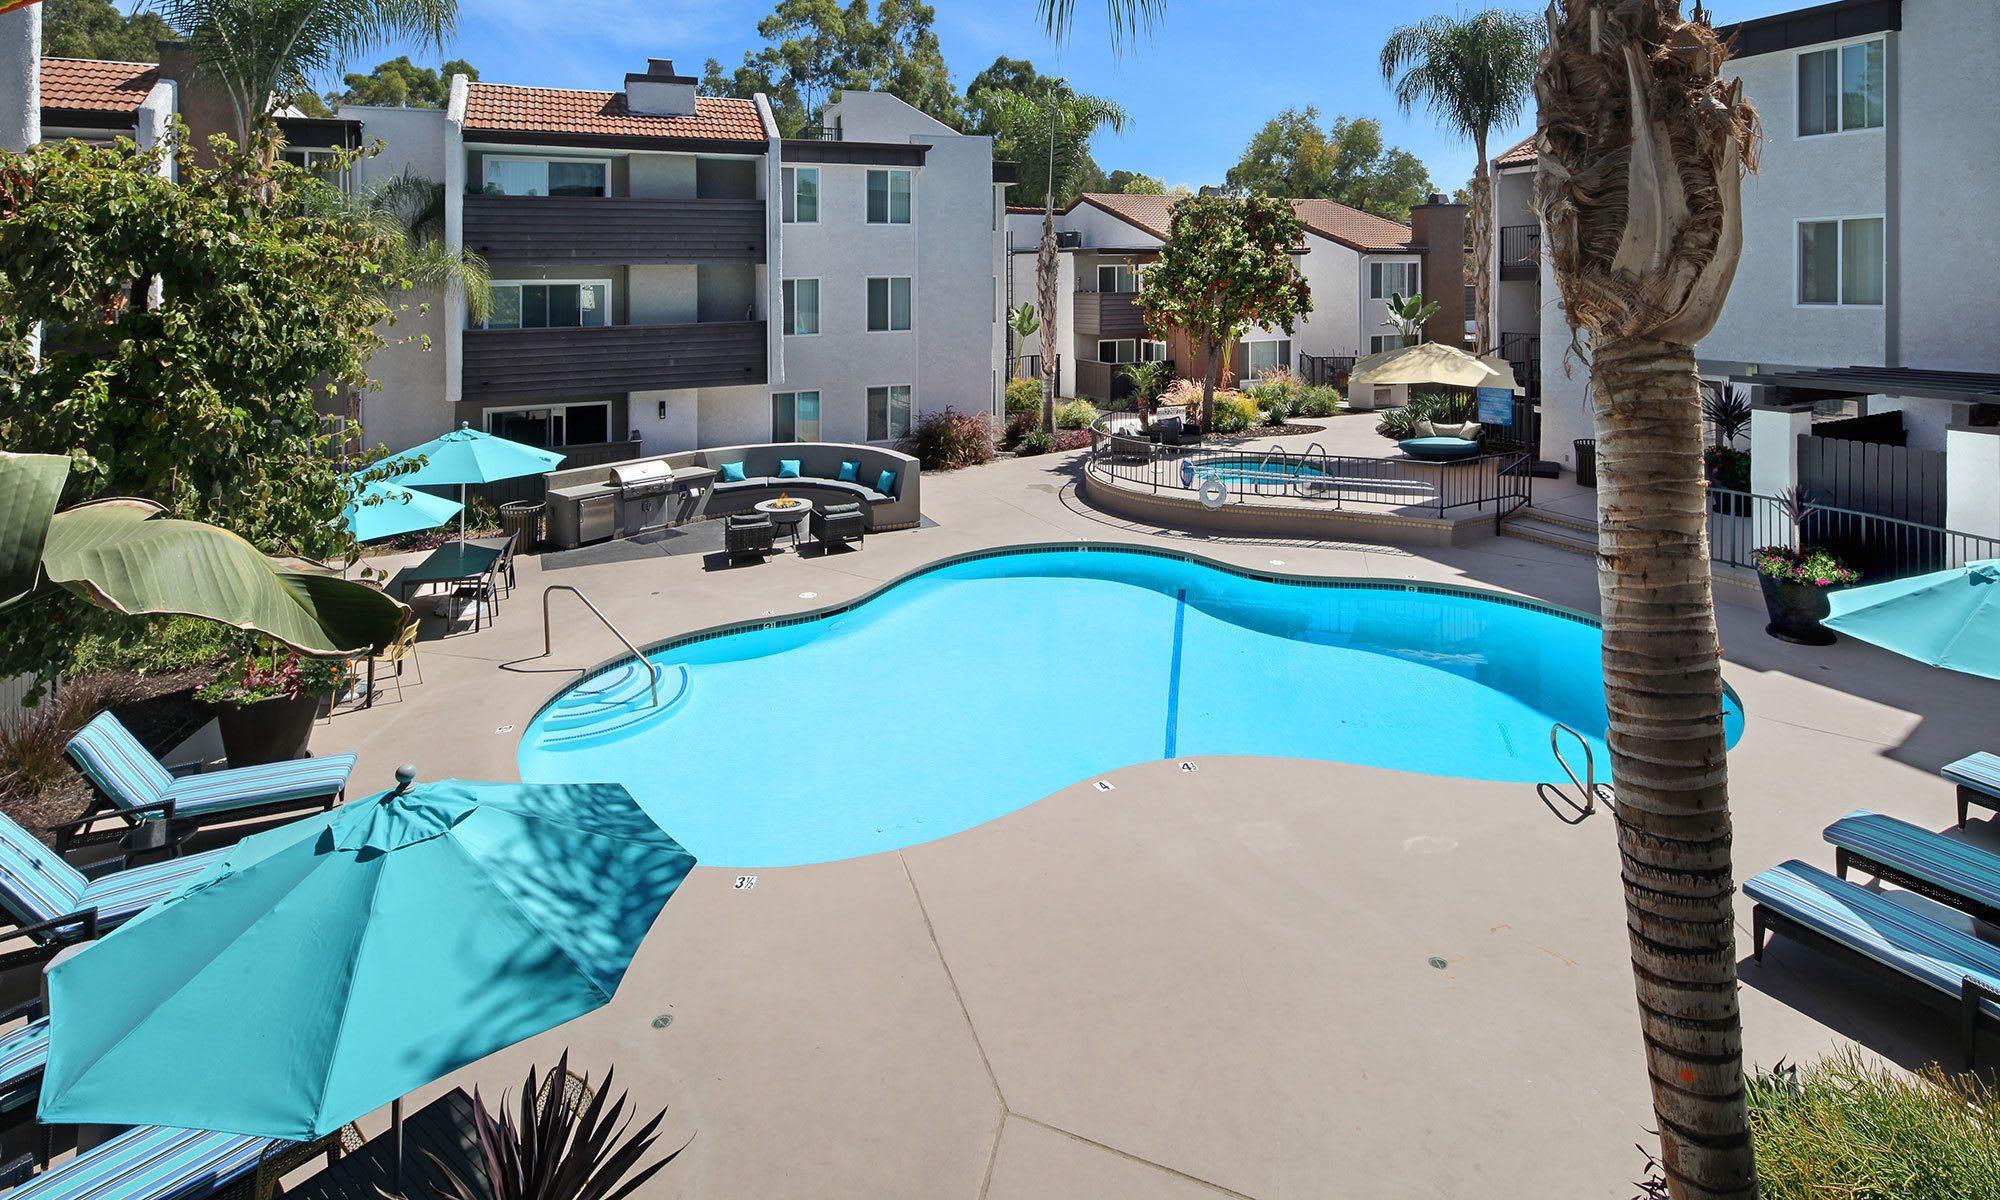 North Woodland Hills CA Apartments For Rent In Warner Center